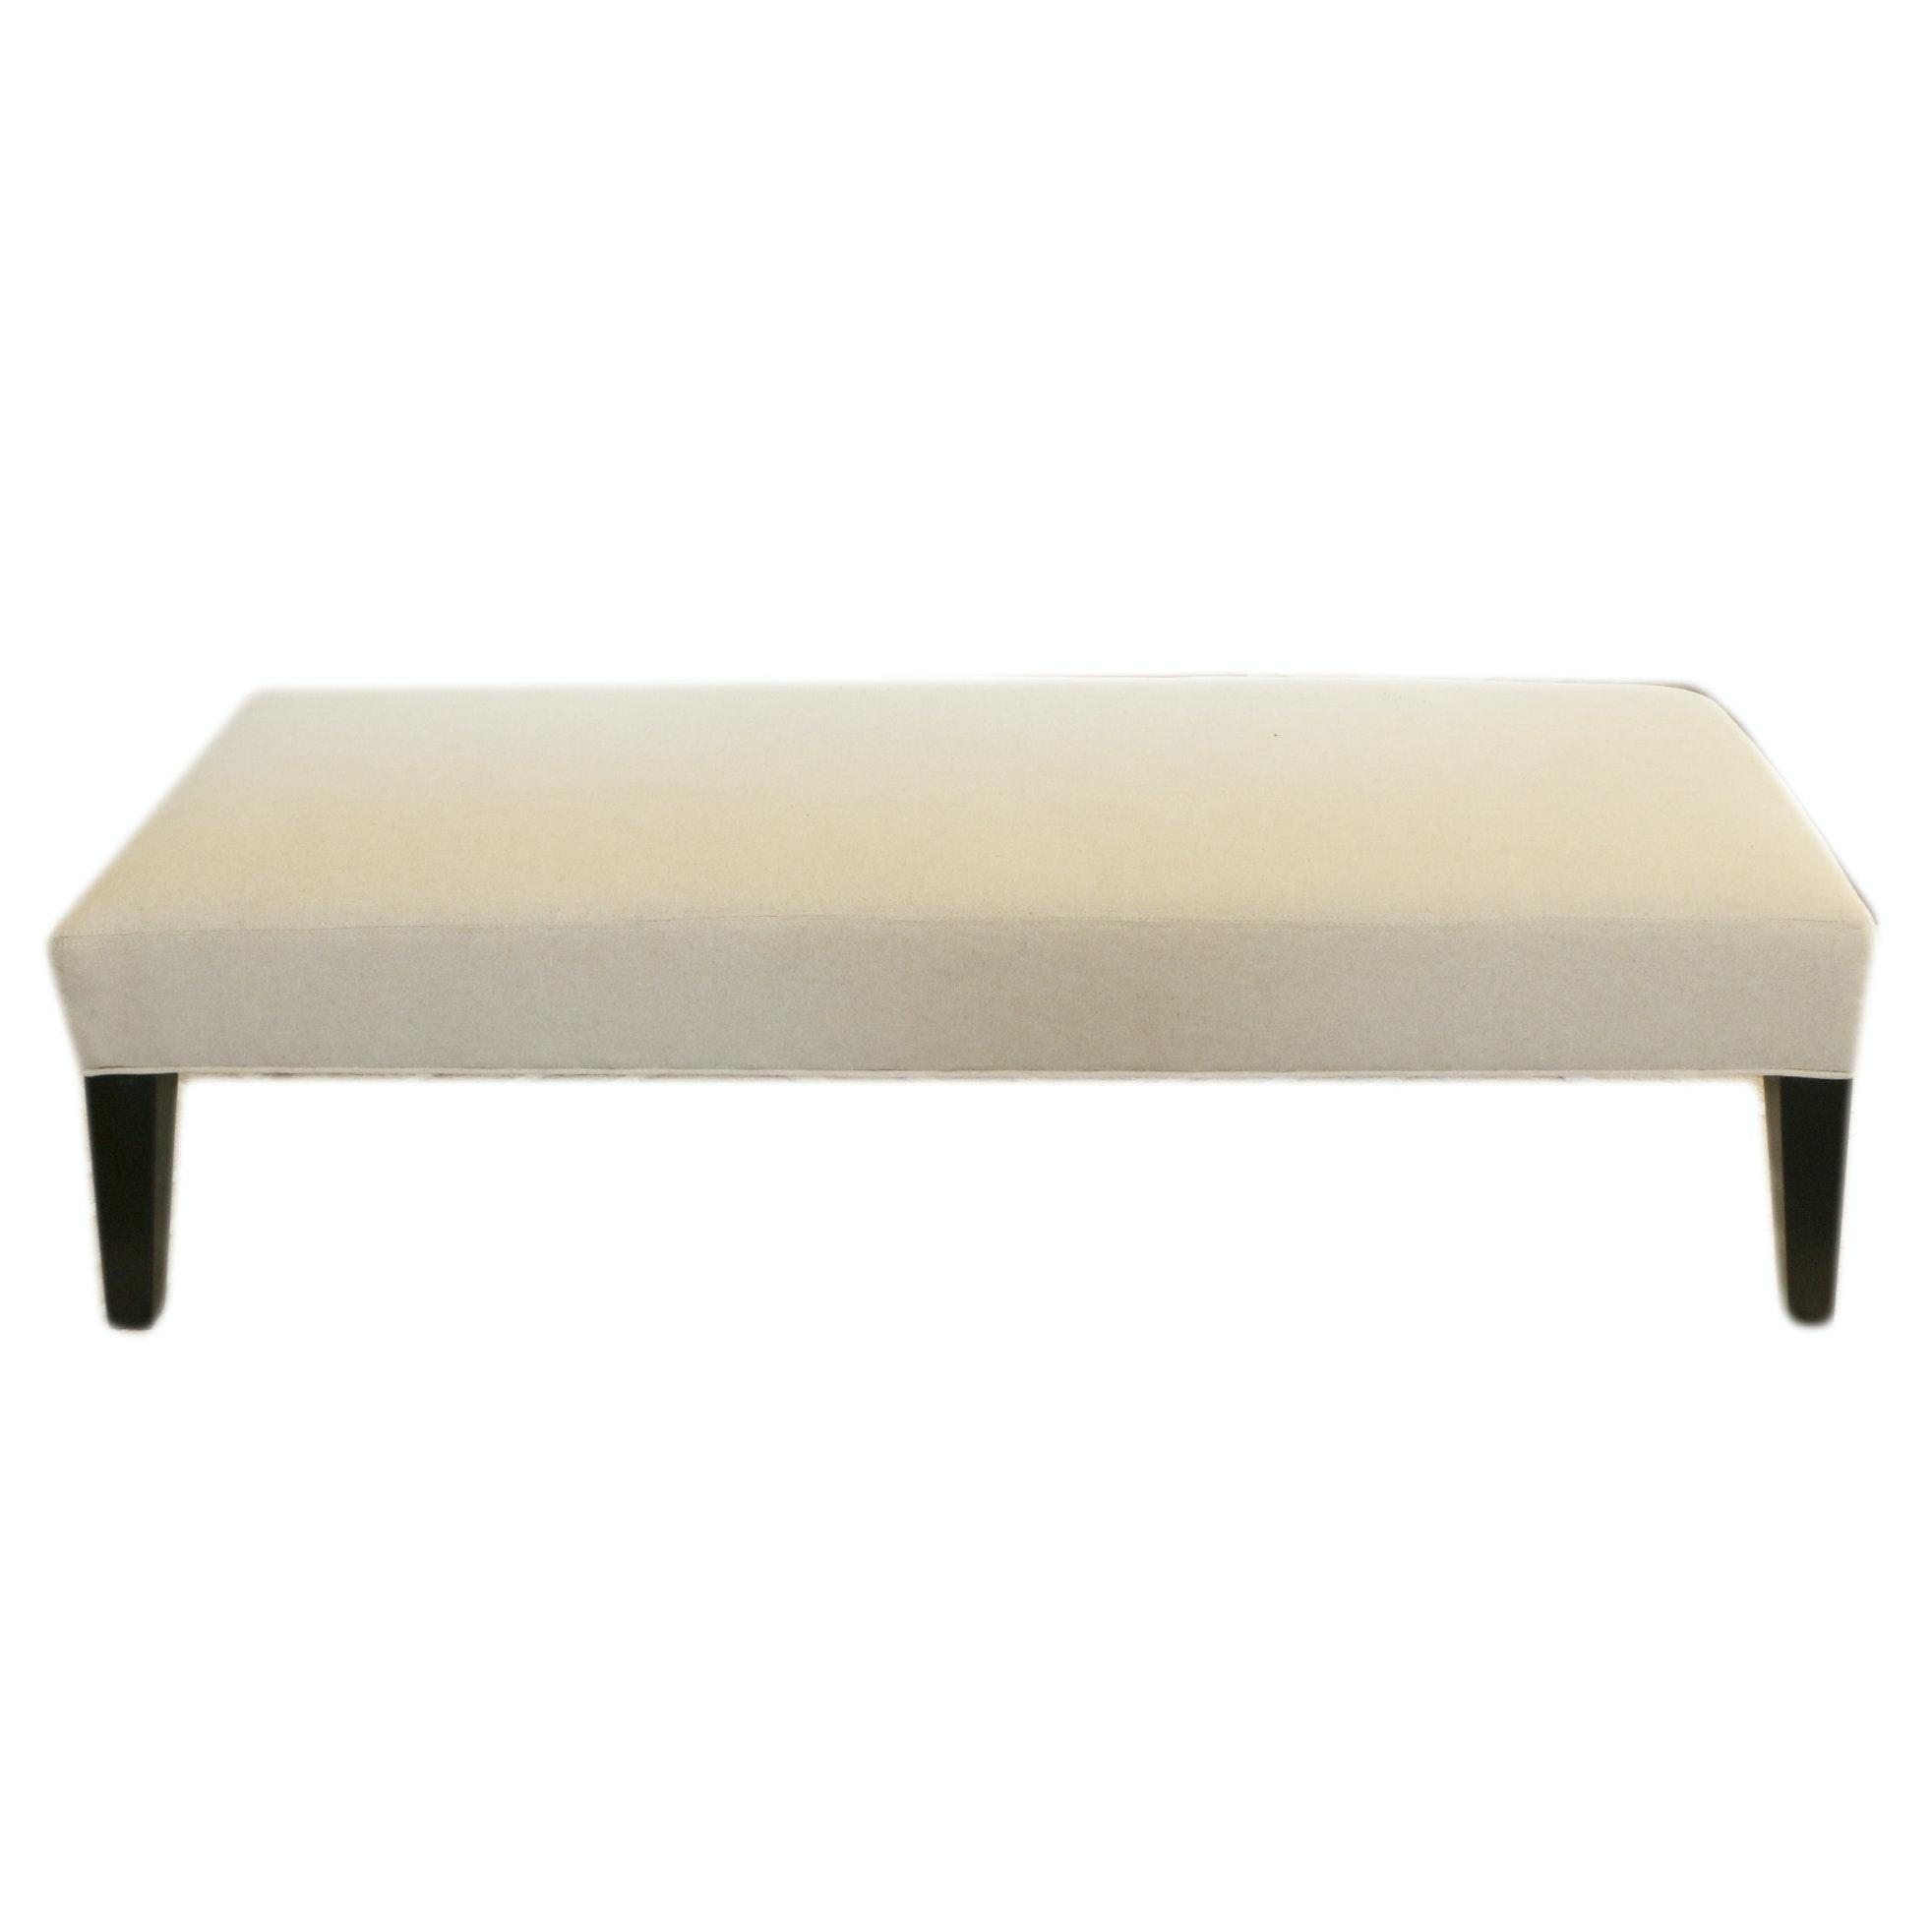 Upholstered Bed Bench, 21st Century